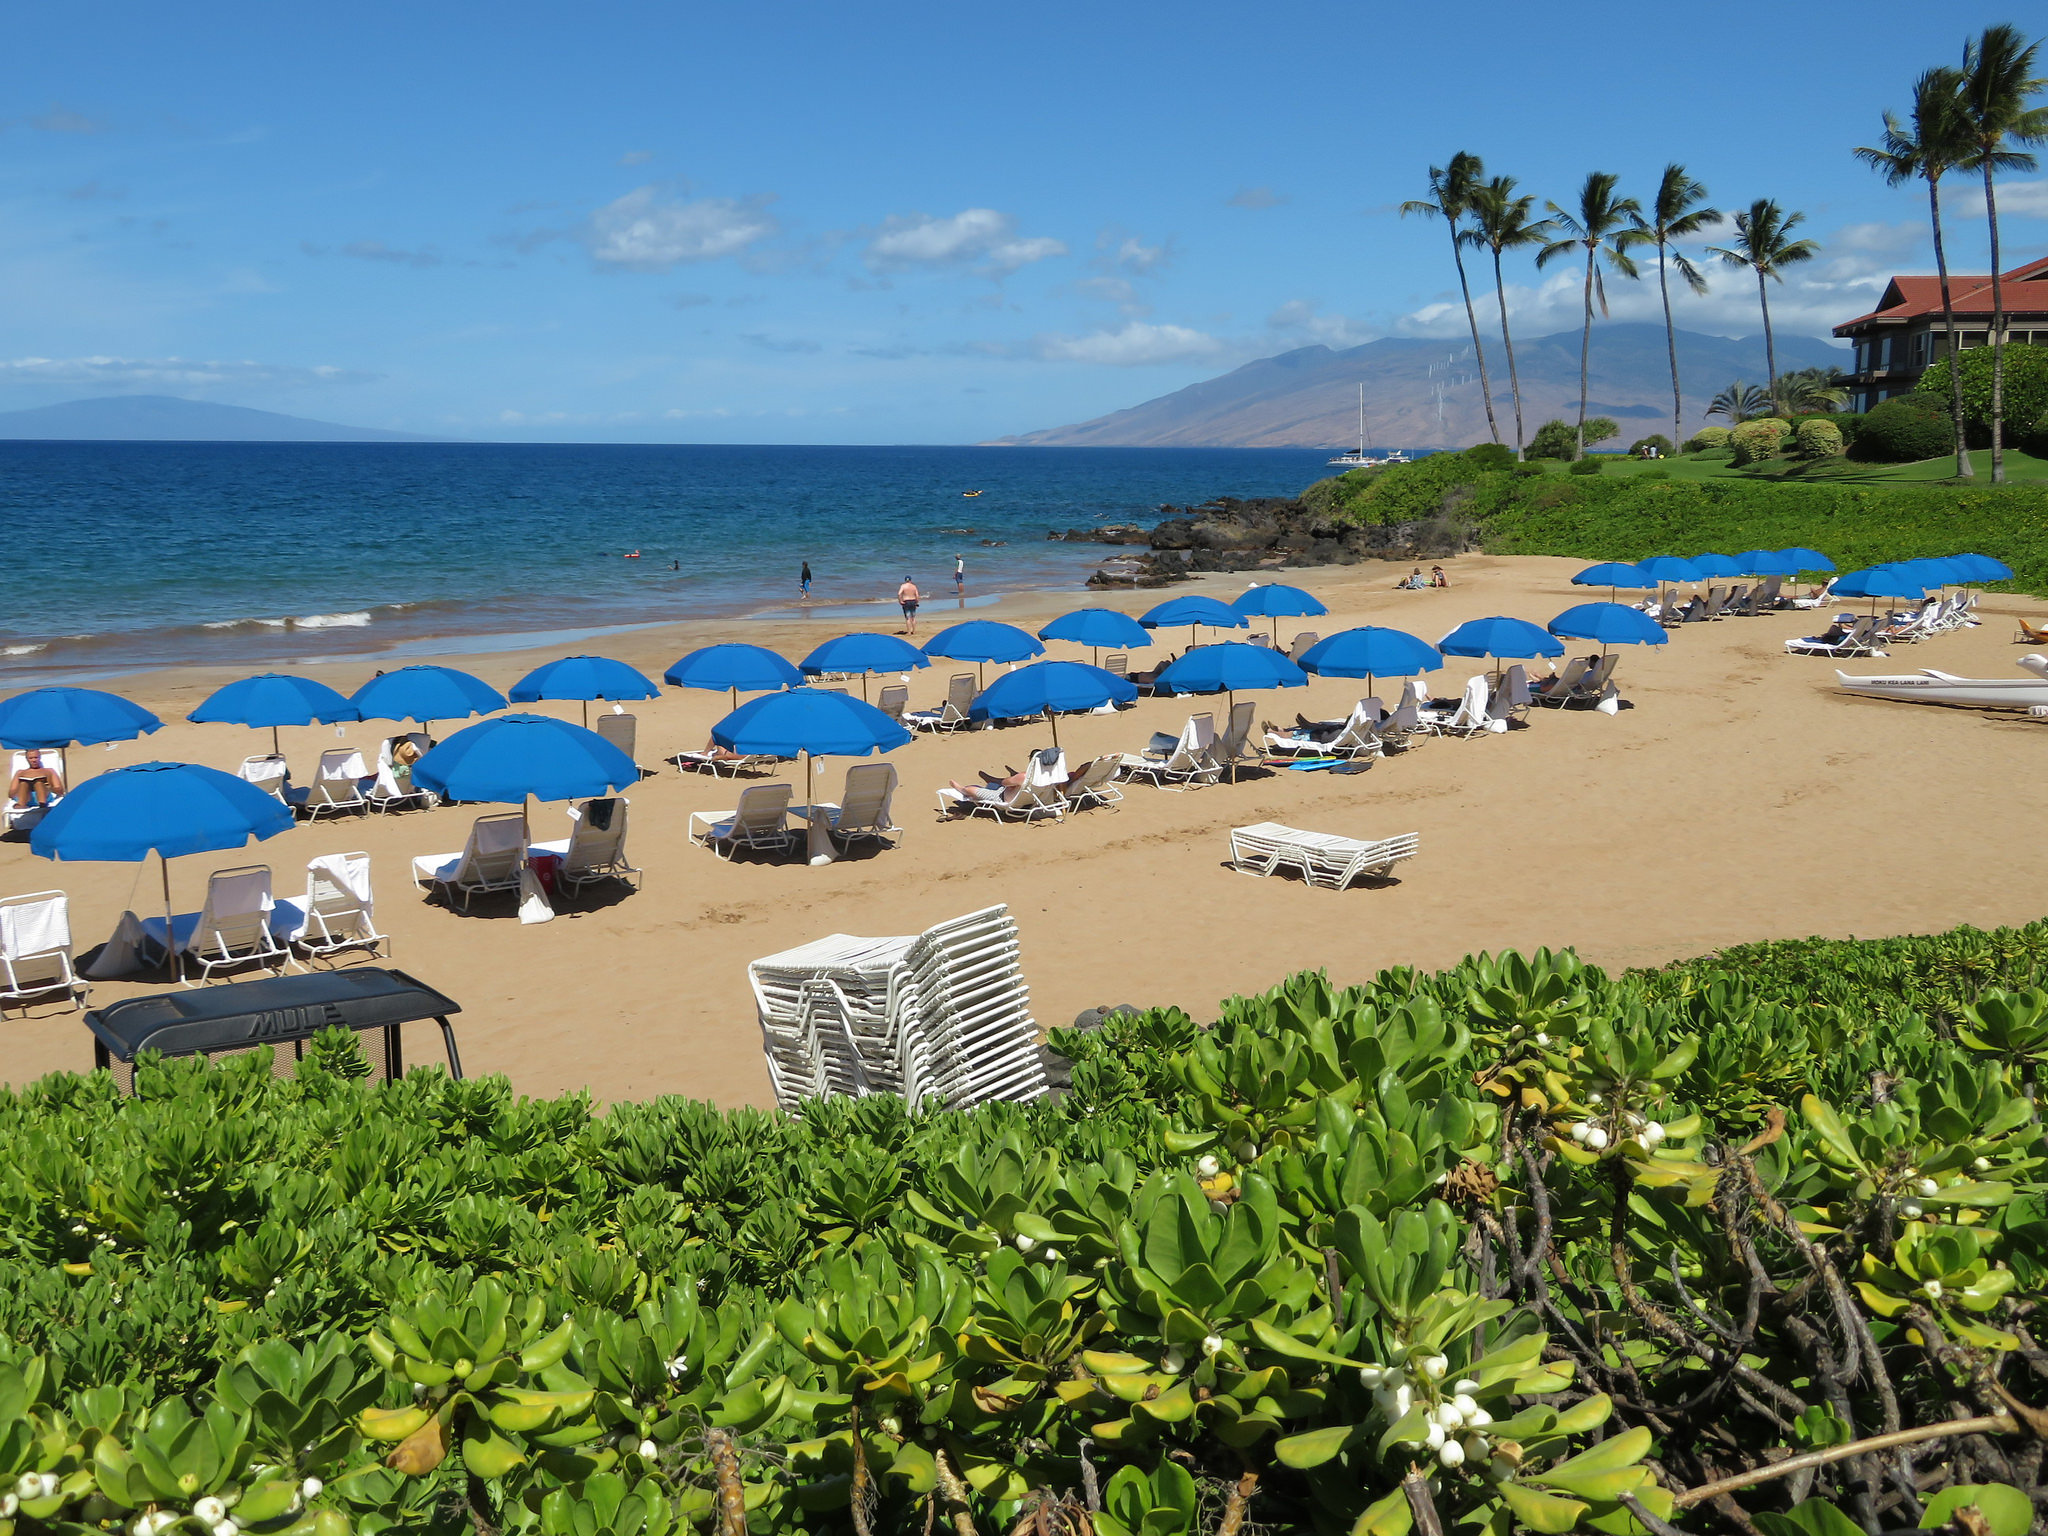 Maui Hotels Top State in Revenue For February